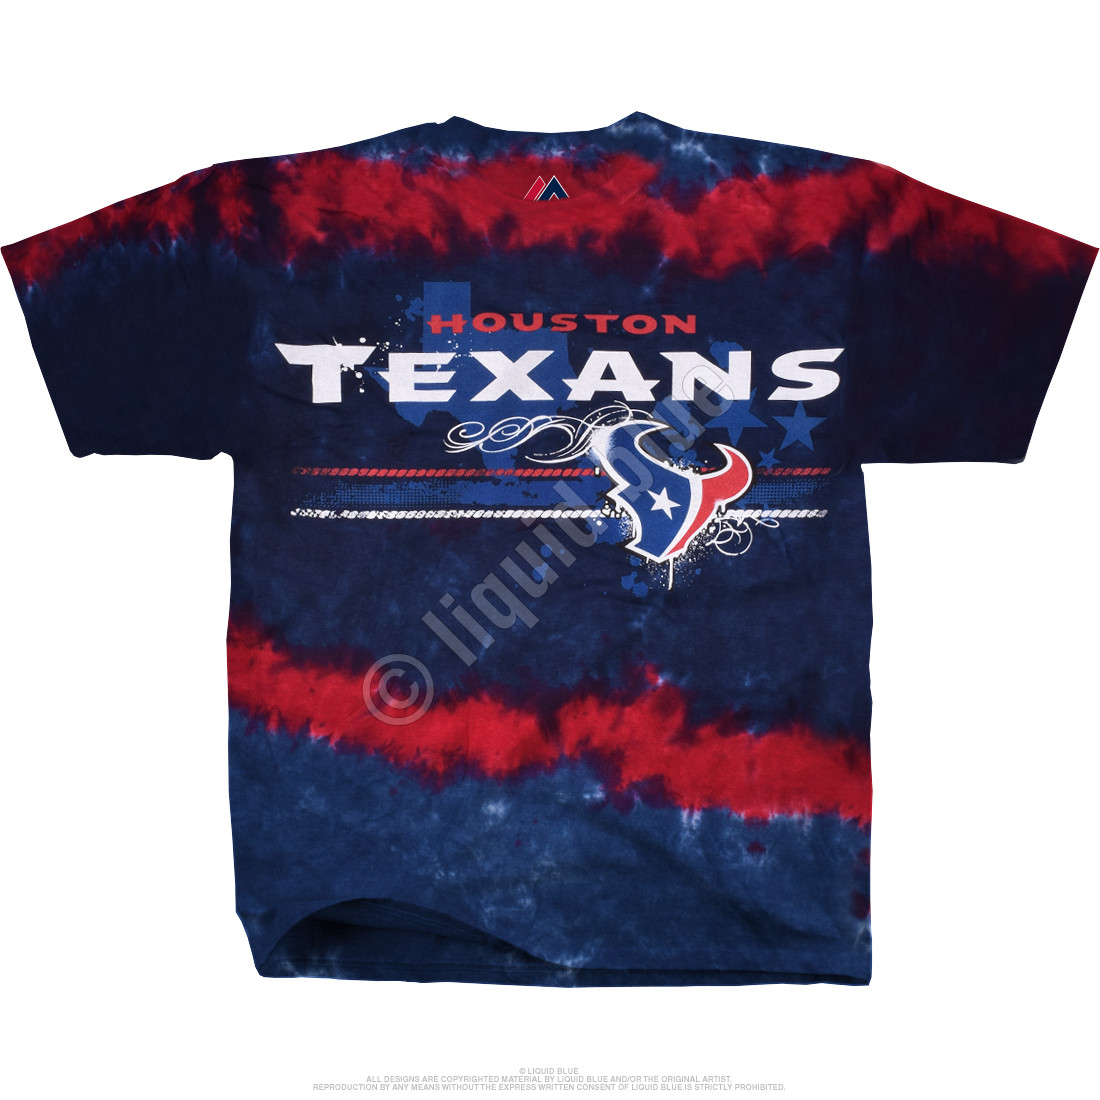 Houston Texans Horizontal Stencil Tie-Dye T-Shirt